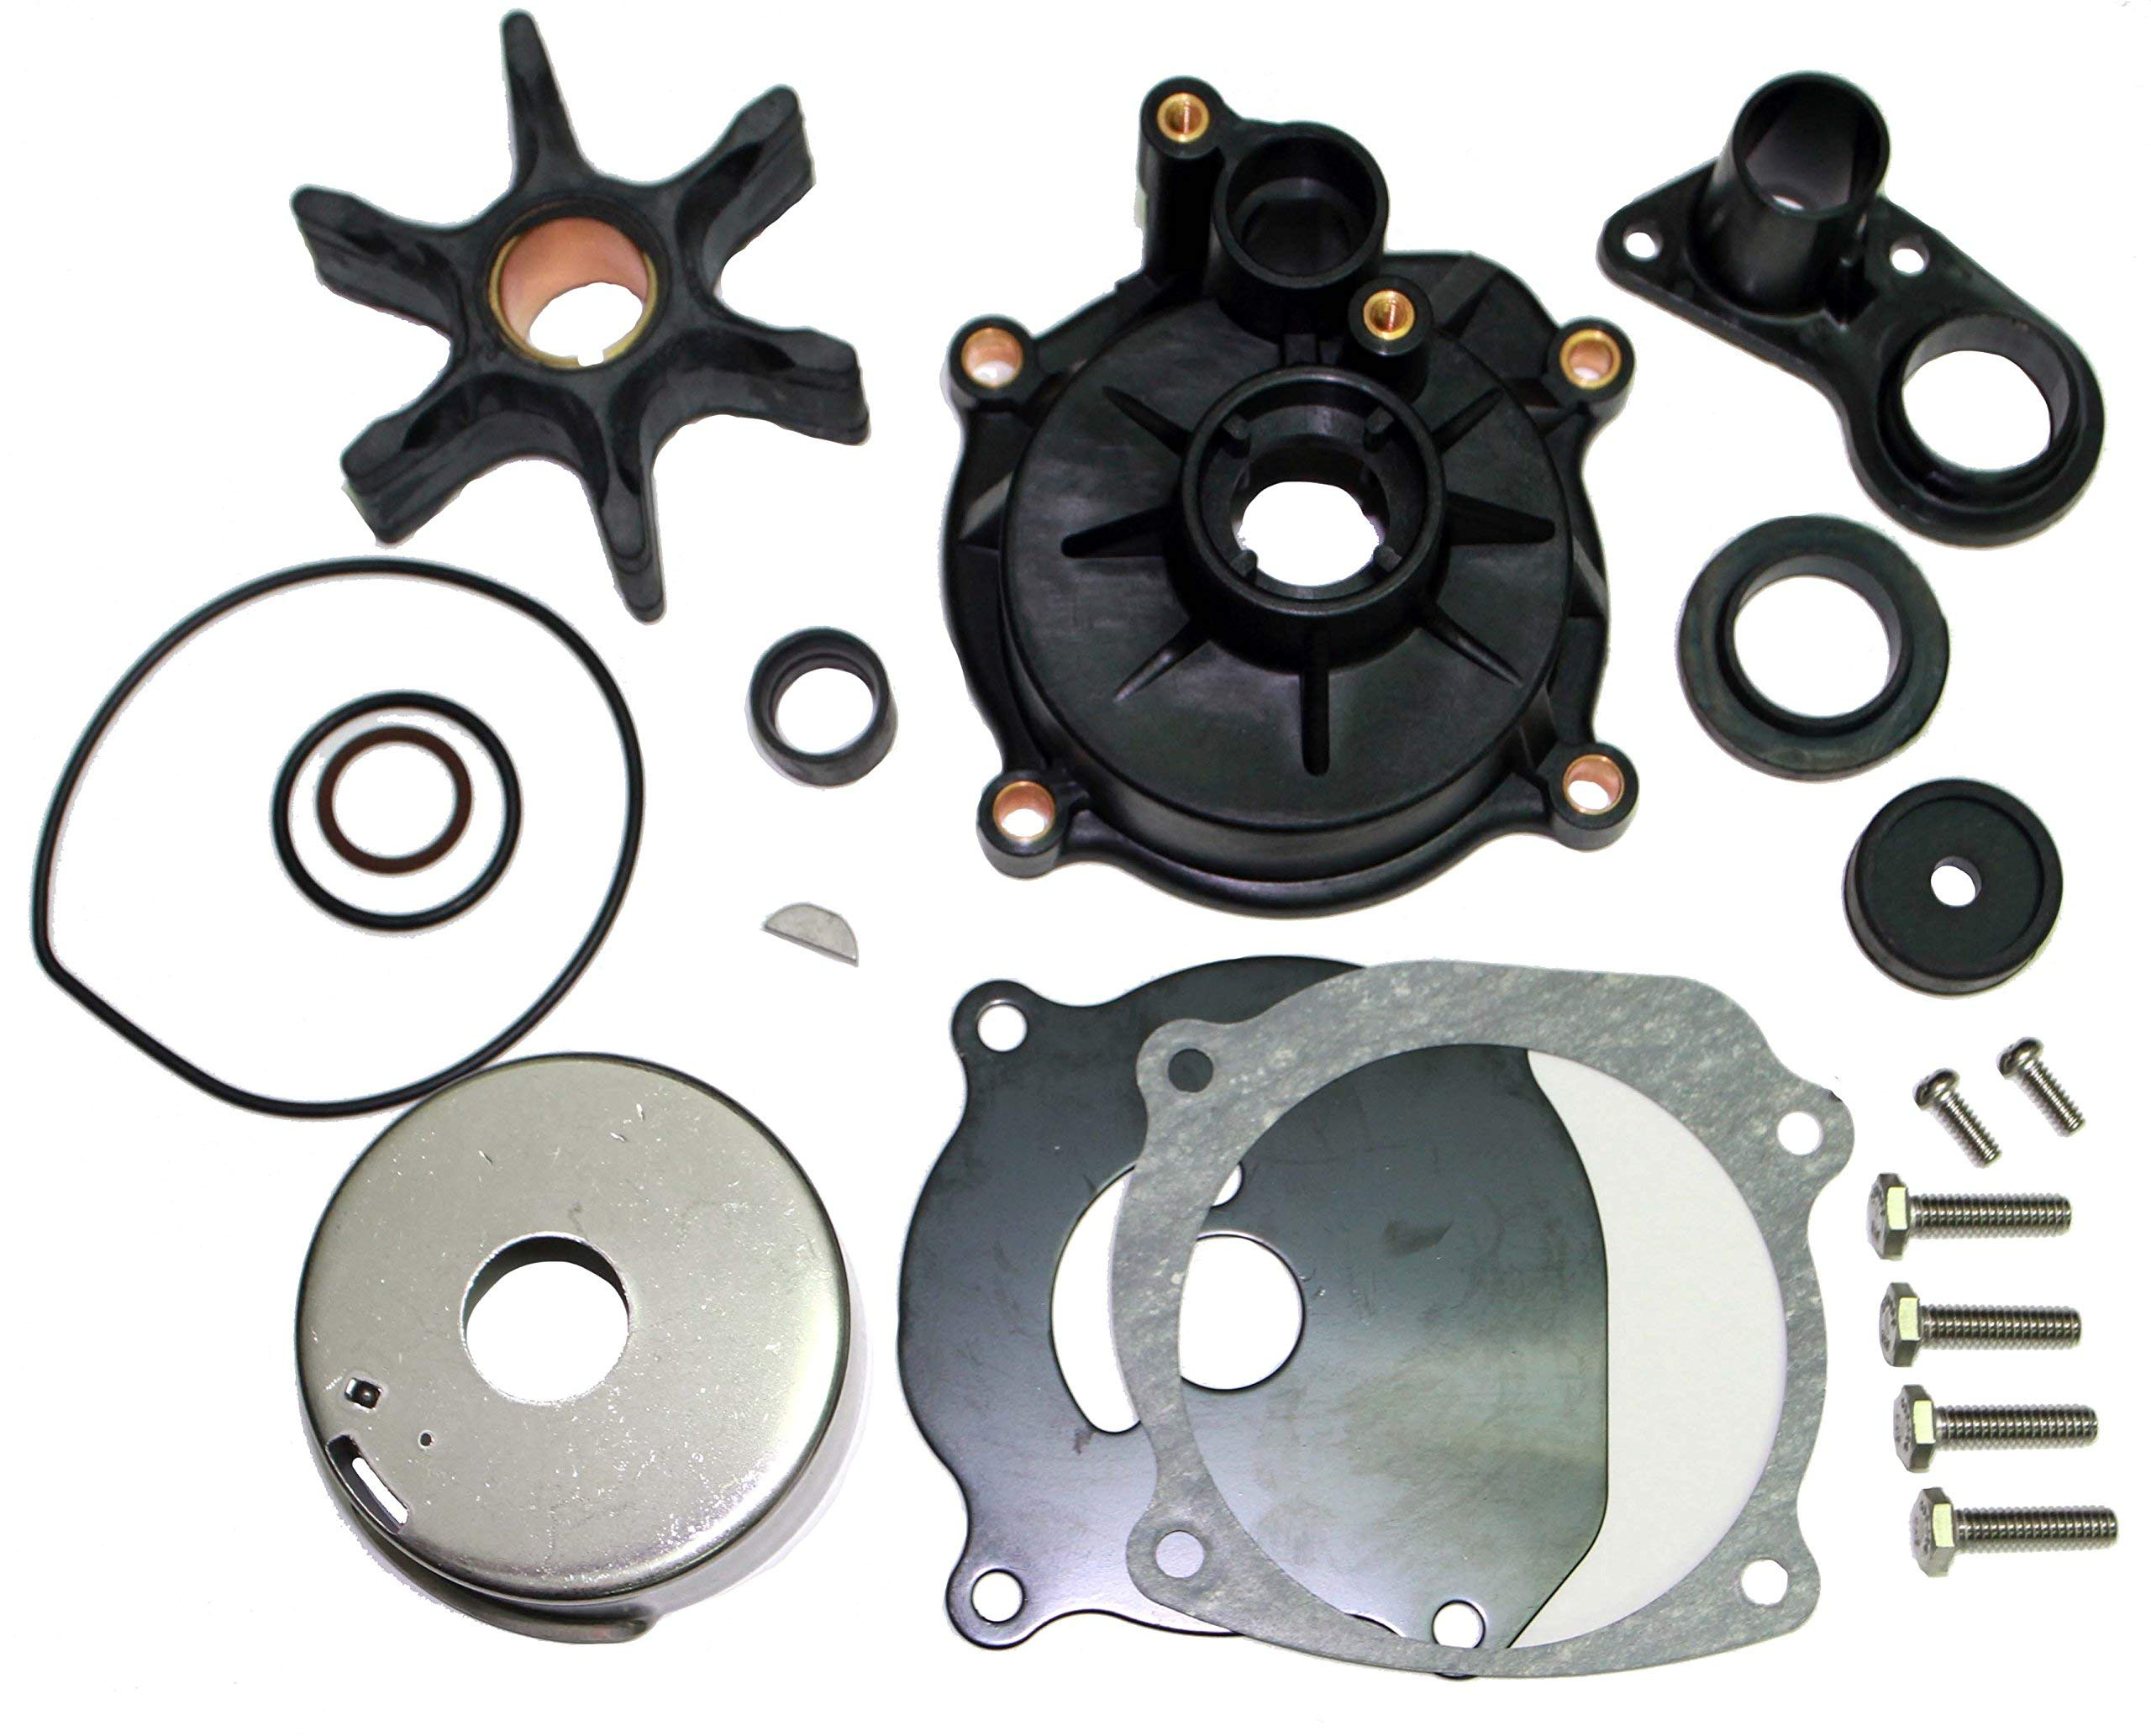 SEI MARINE PRODUCTS- Compatible with Evinrude Johnson Water Pump Kit 0395073 1978-1984 85 115 140 150 175 200 HP 2 Stroke by SEI Marine Products